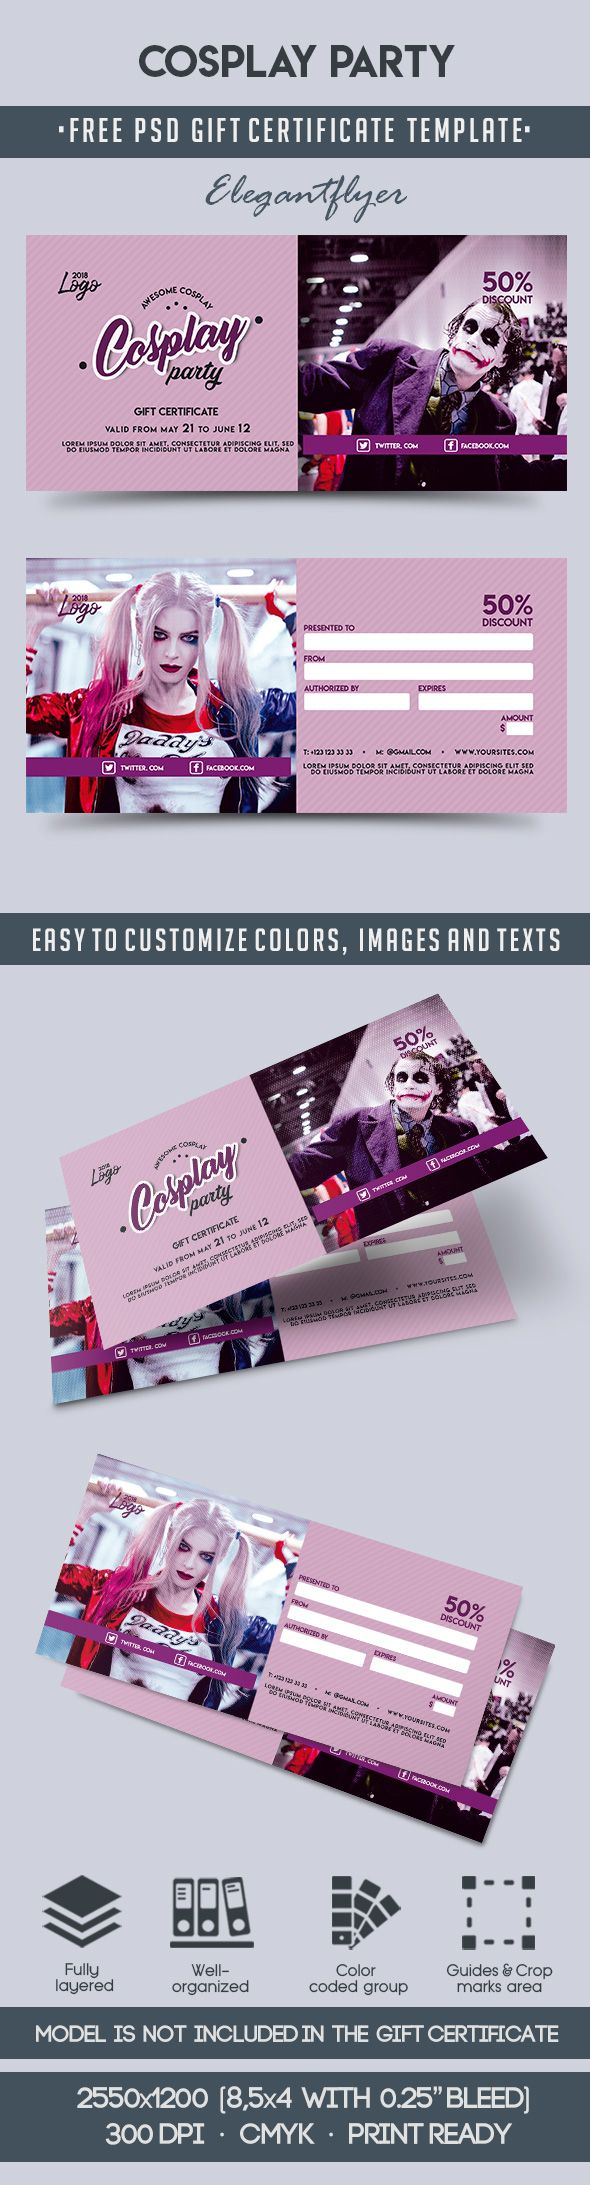 Cosplay Party – Free Gift Certificate PSD Template